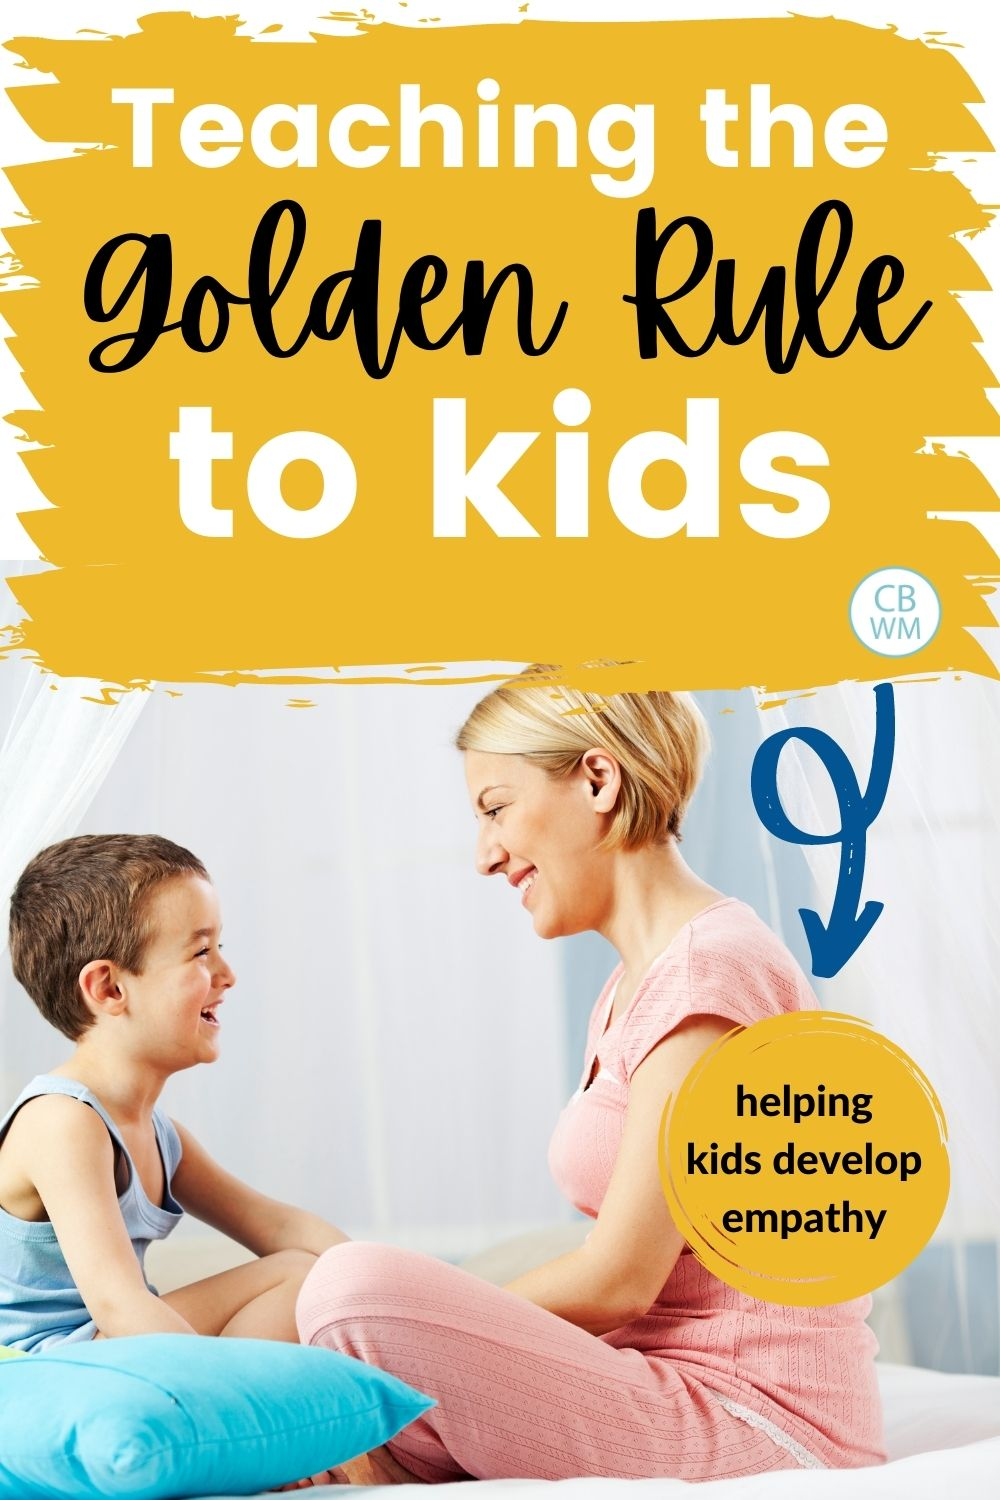 Teaching golden rule to kids